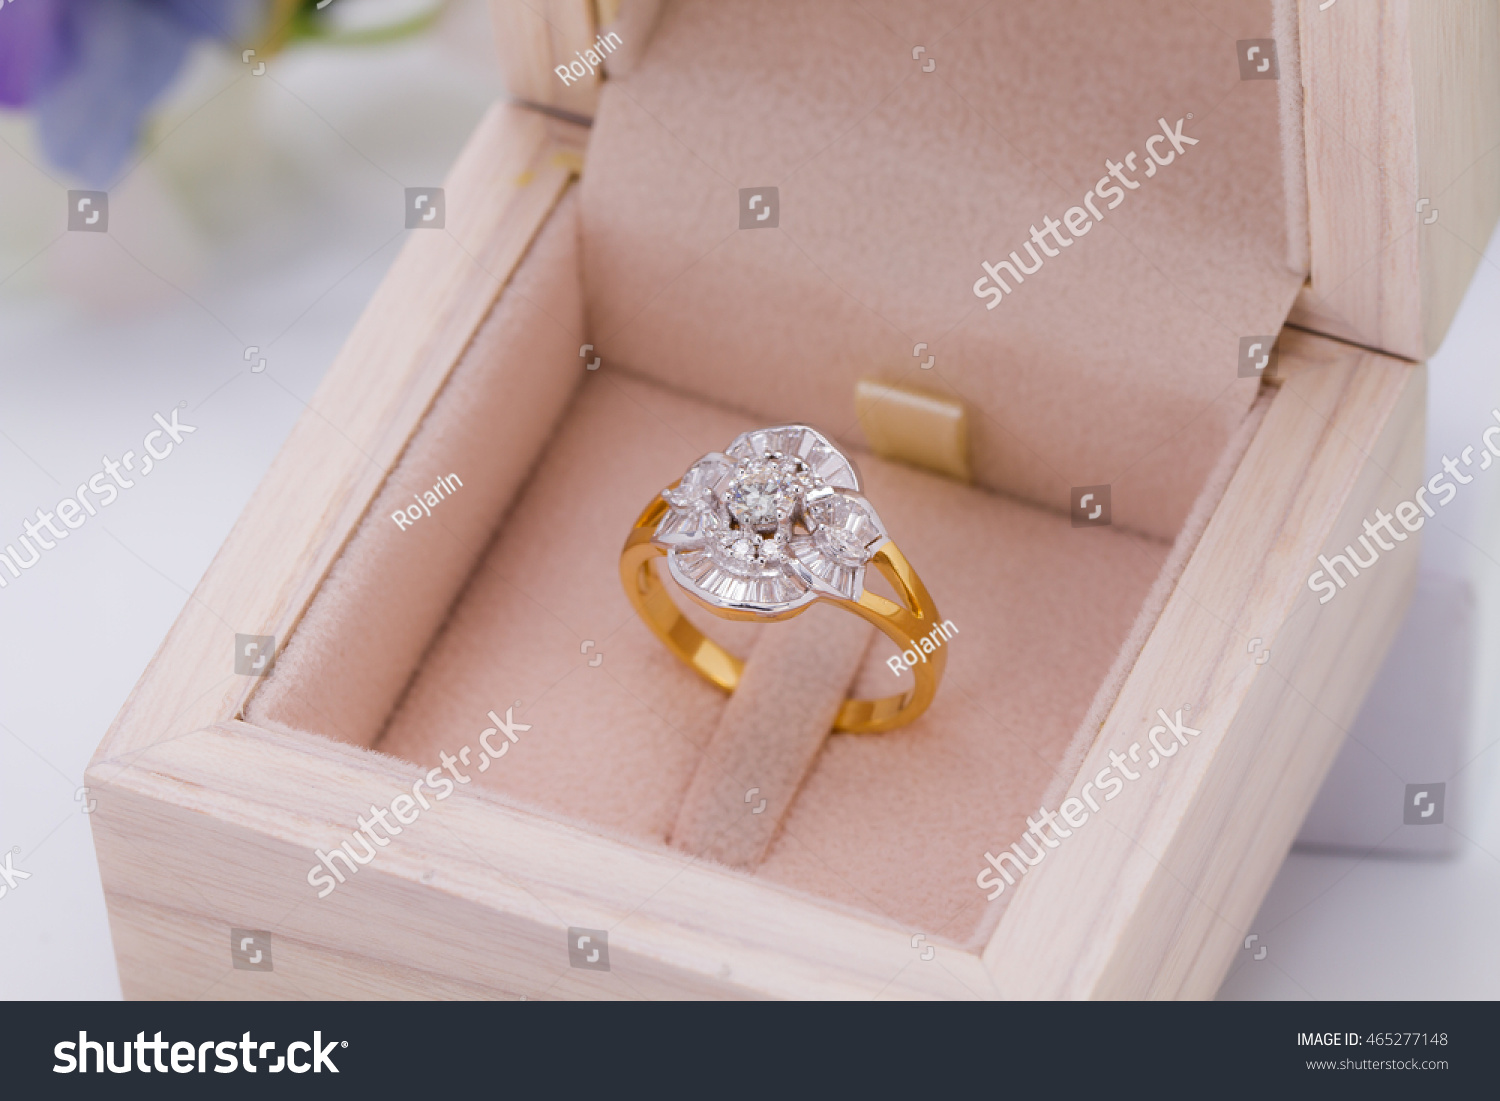 Diamond Classic Gold Ring Jewelry Box Stock Photo (Royalty Free ...